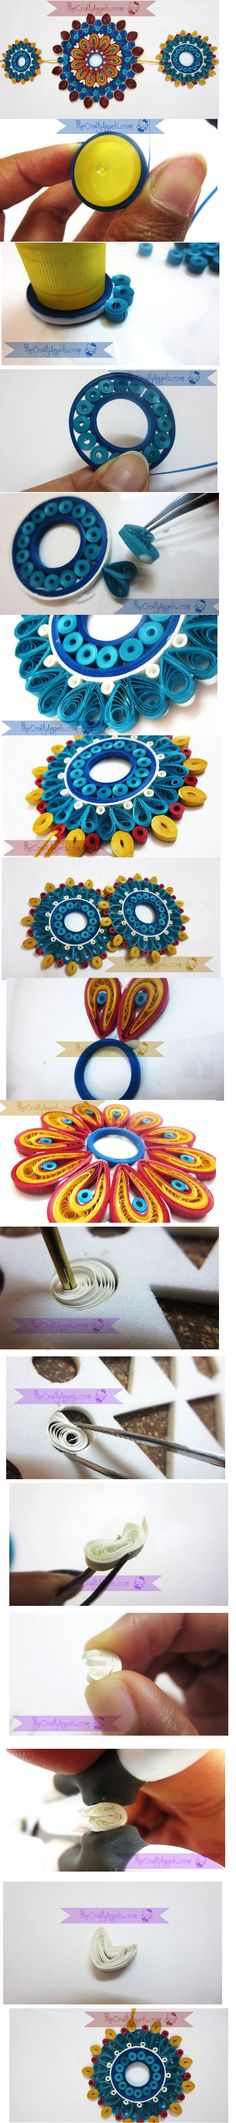 This is a good idea for dot painting ideas in paper quilling.